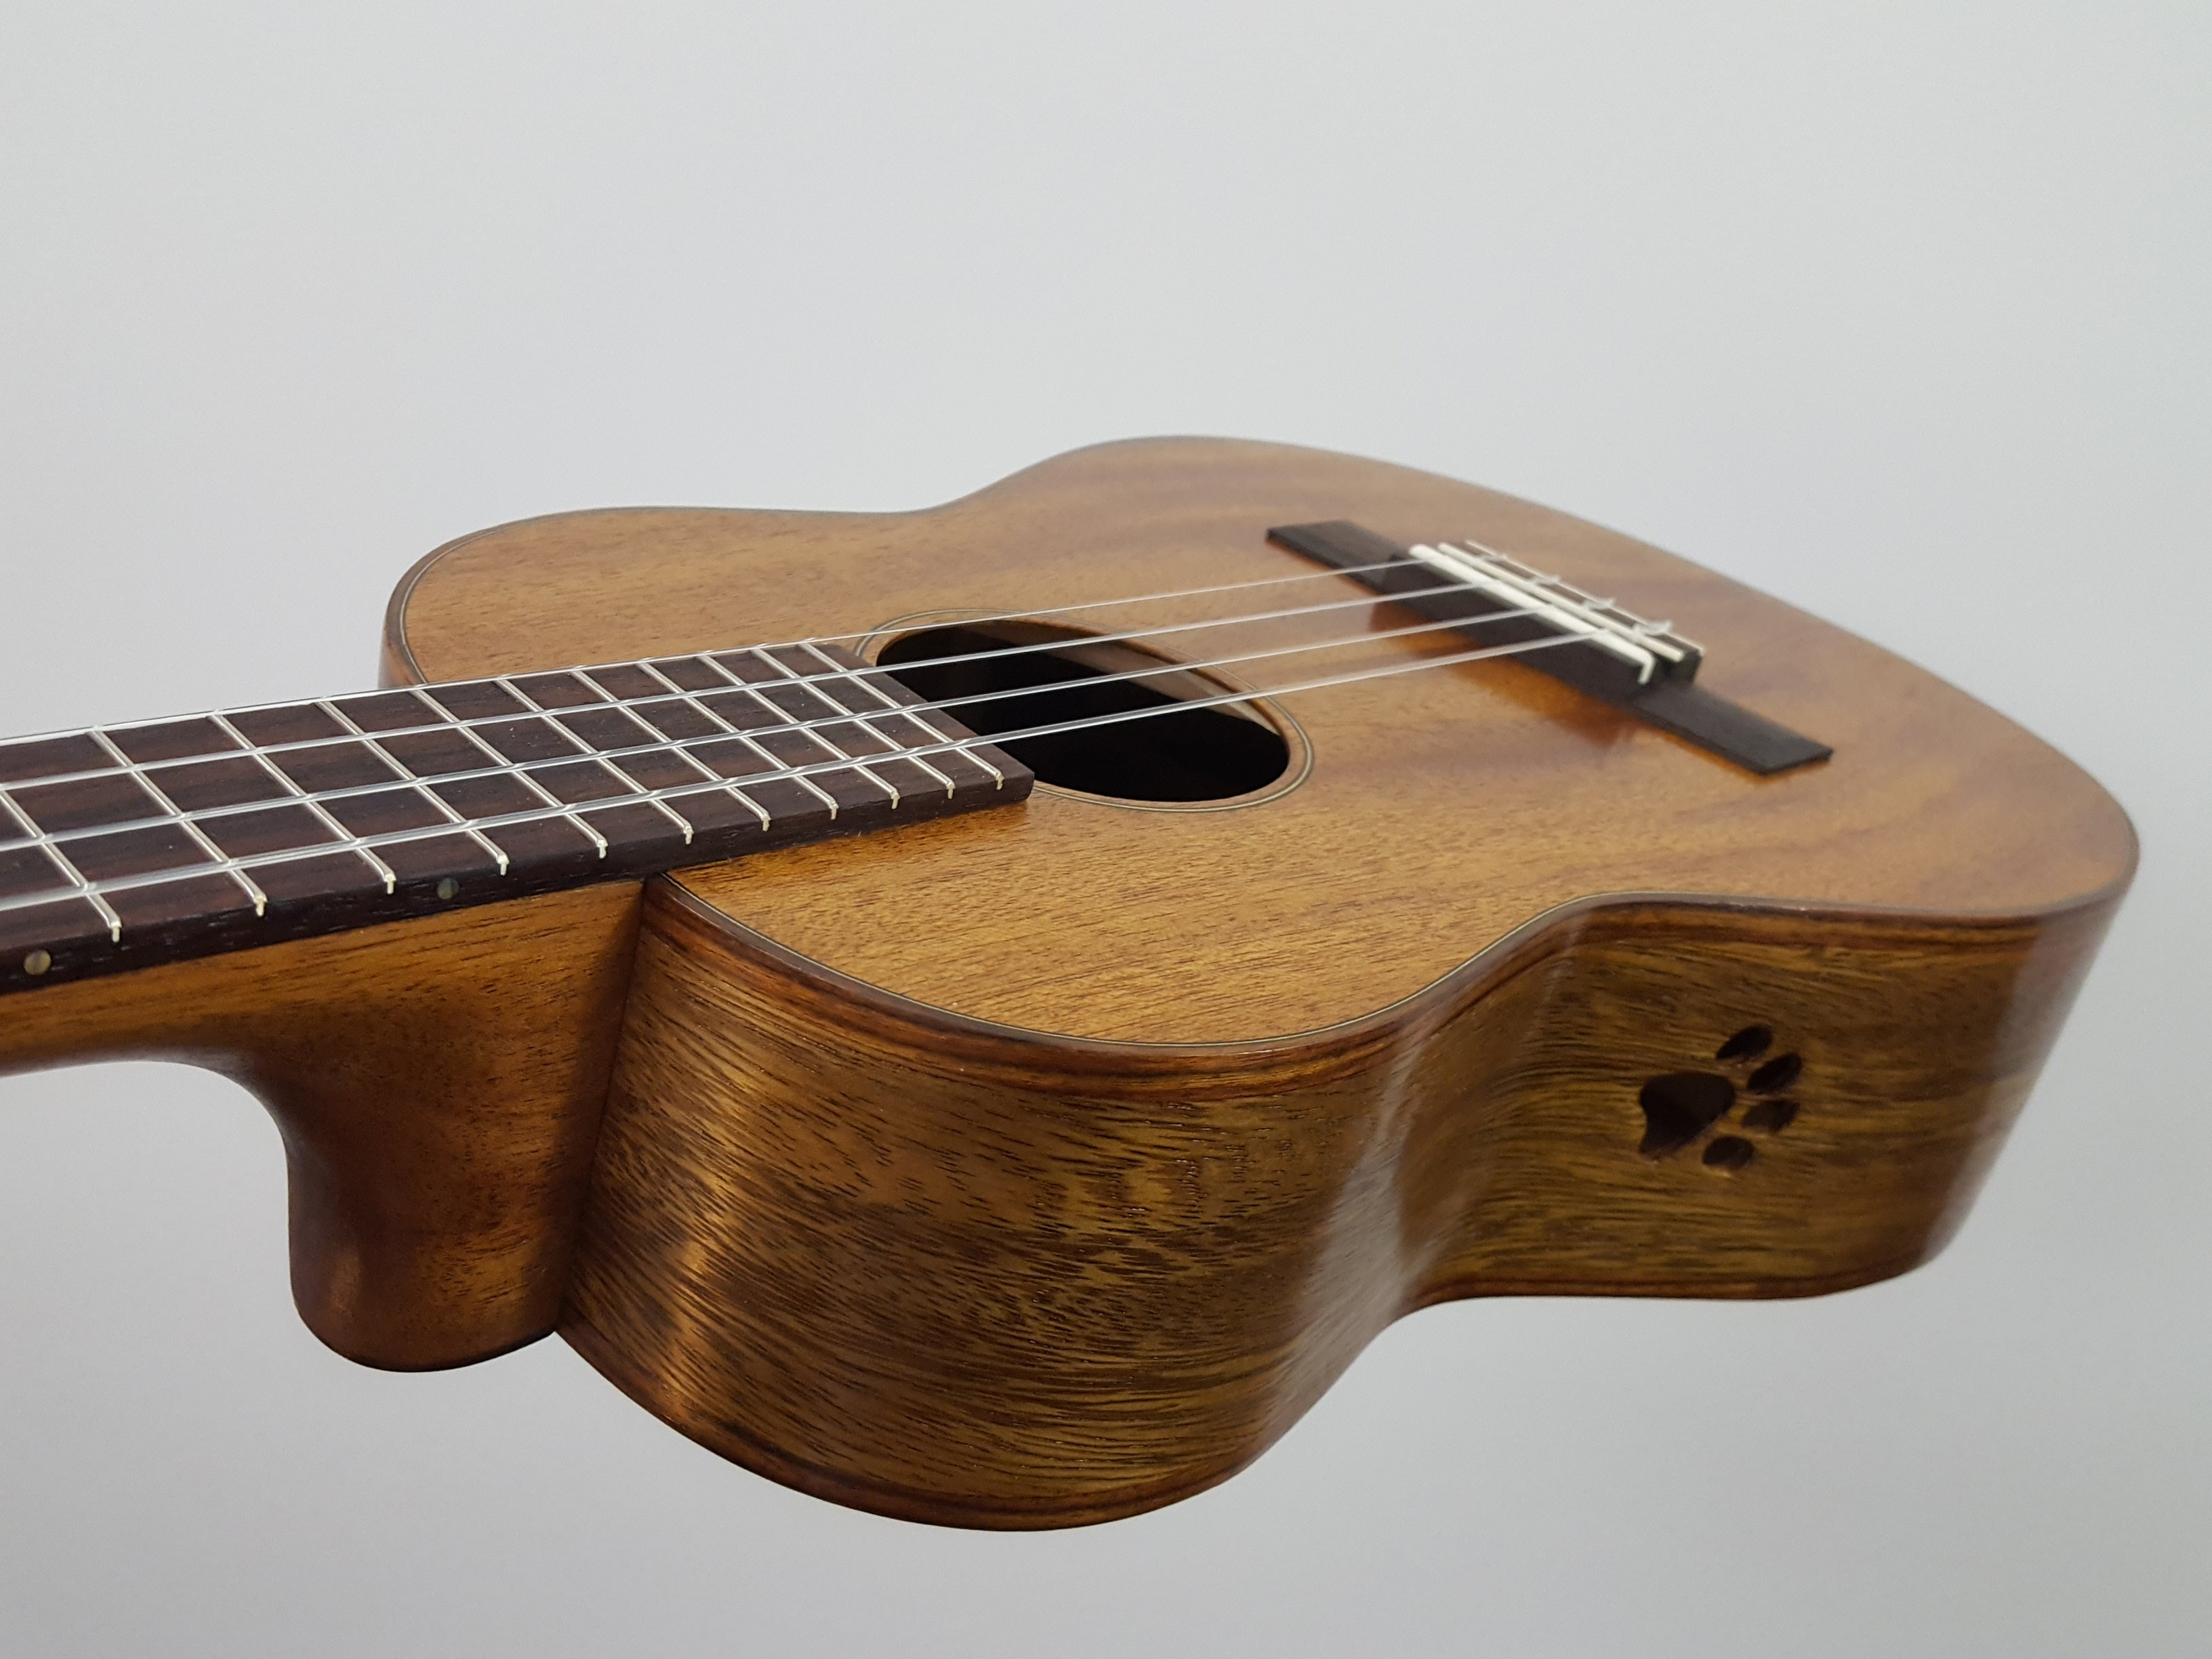 Ukulele with sound port